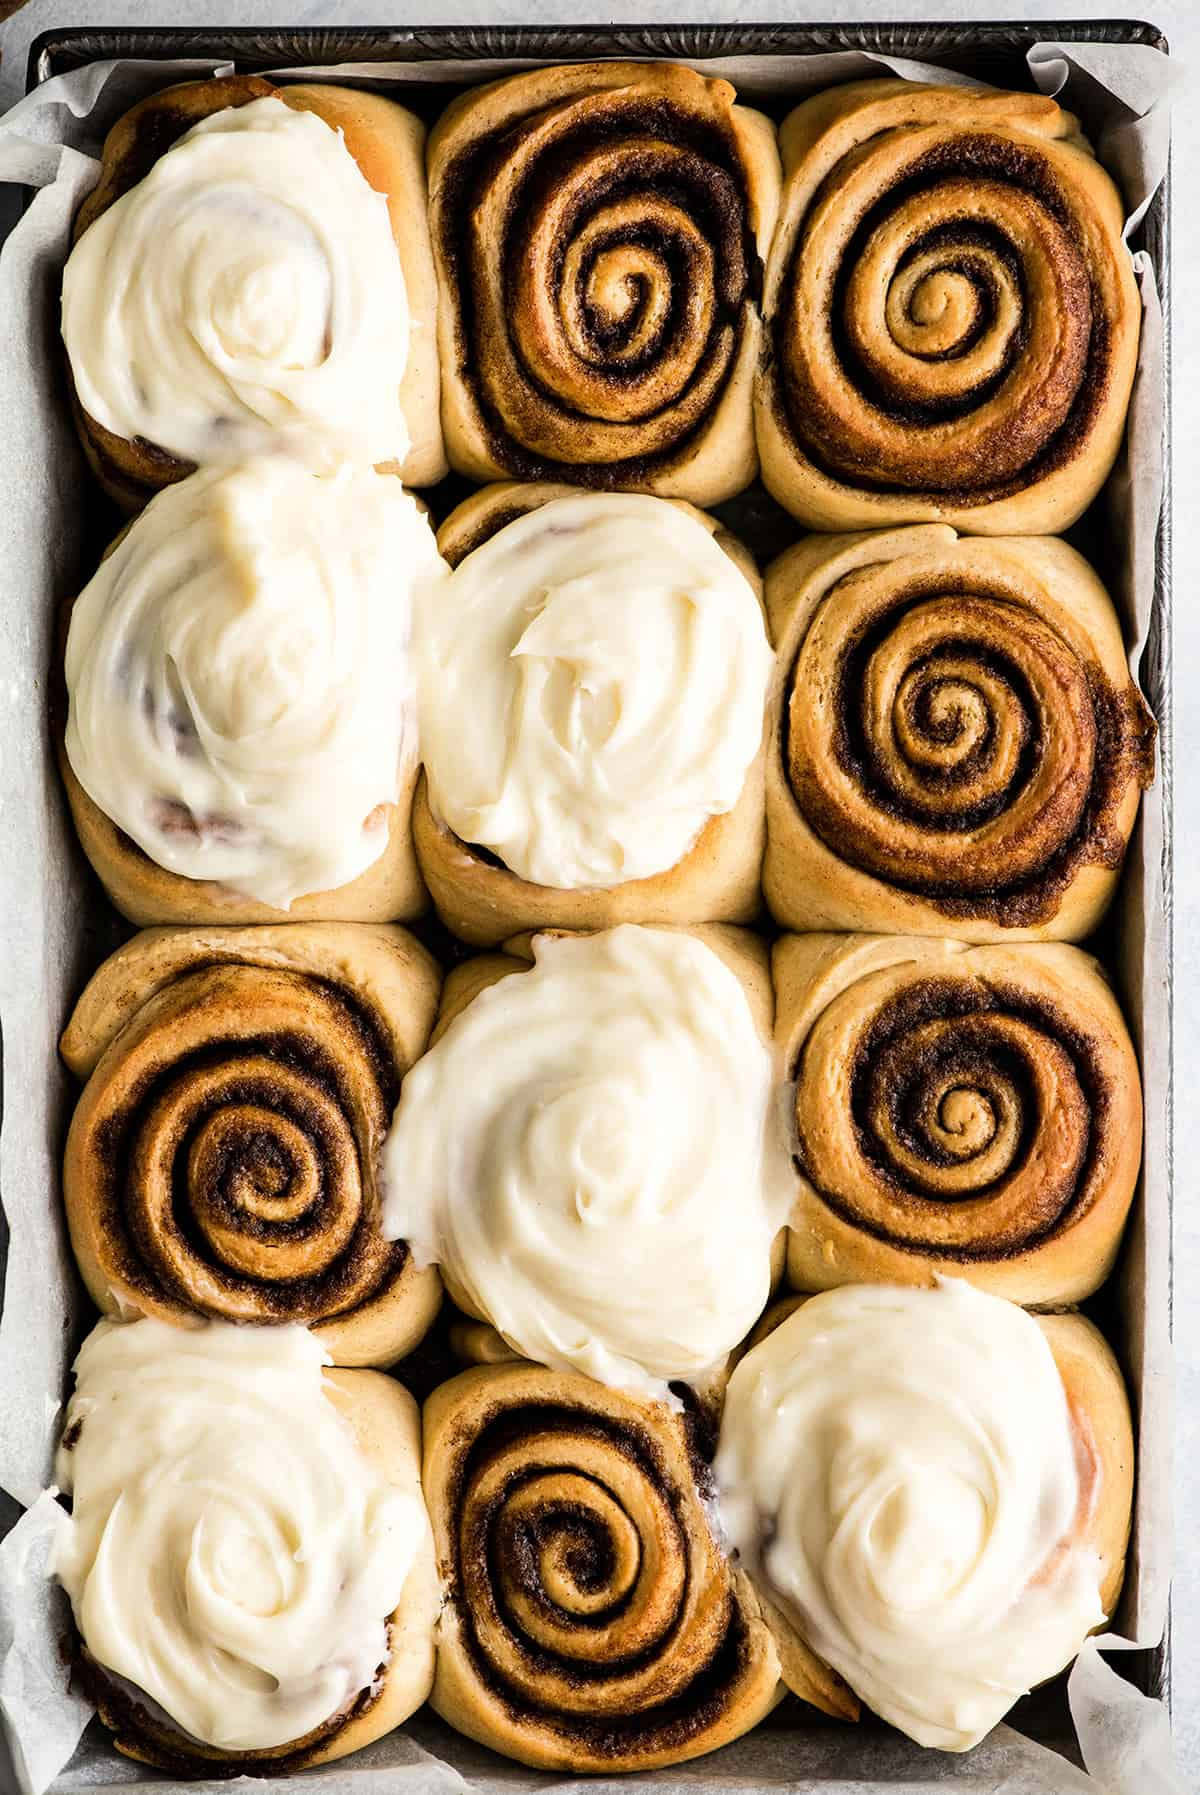 How Long Does It Take To Make Cinnamon Rolls